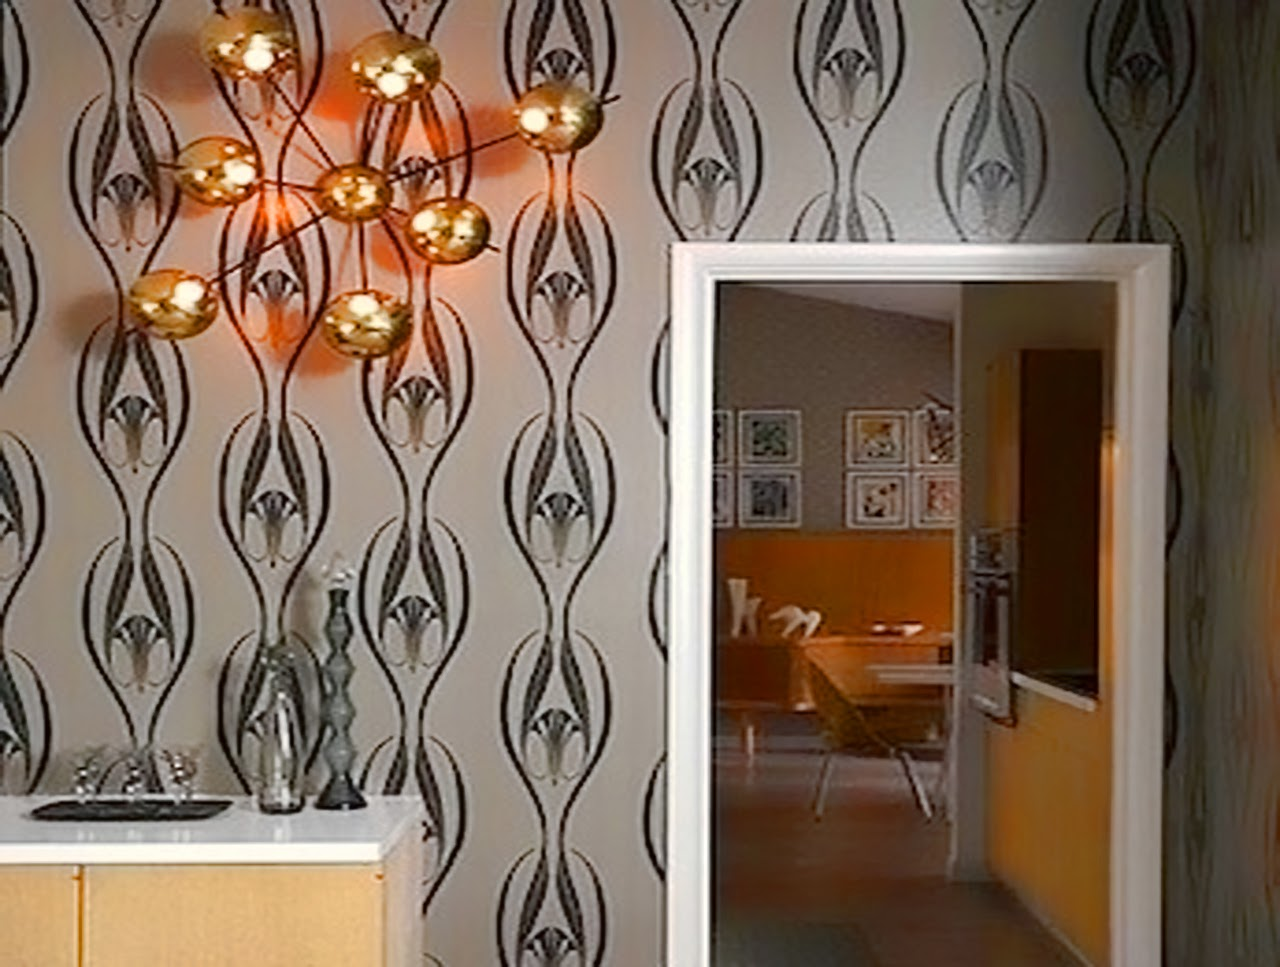 wallpaper sherwin williams wallpaper sherwin williams wallpaper ...